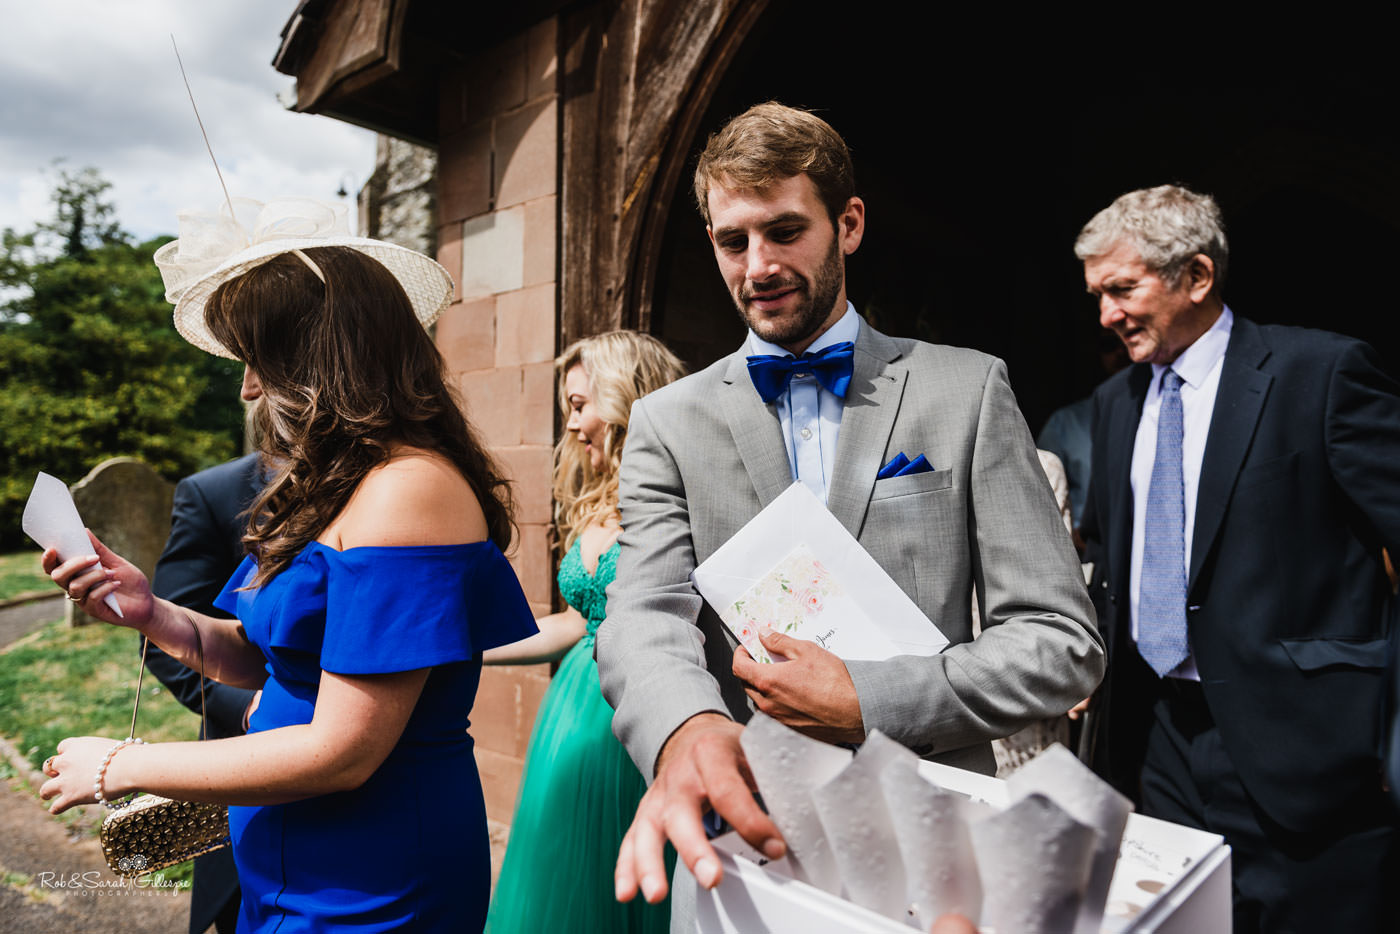 Wedding guests collect confetti